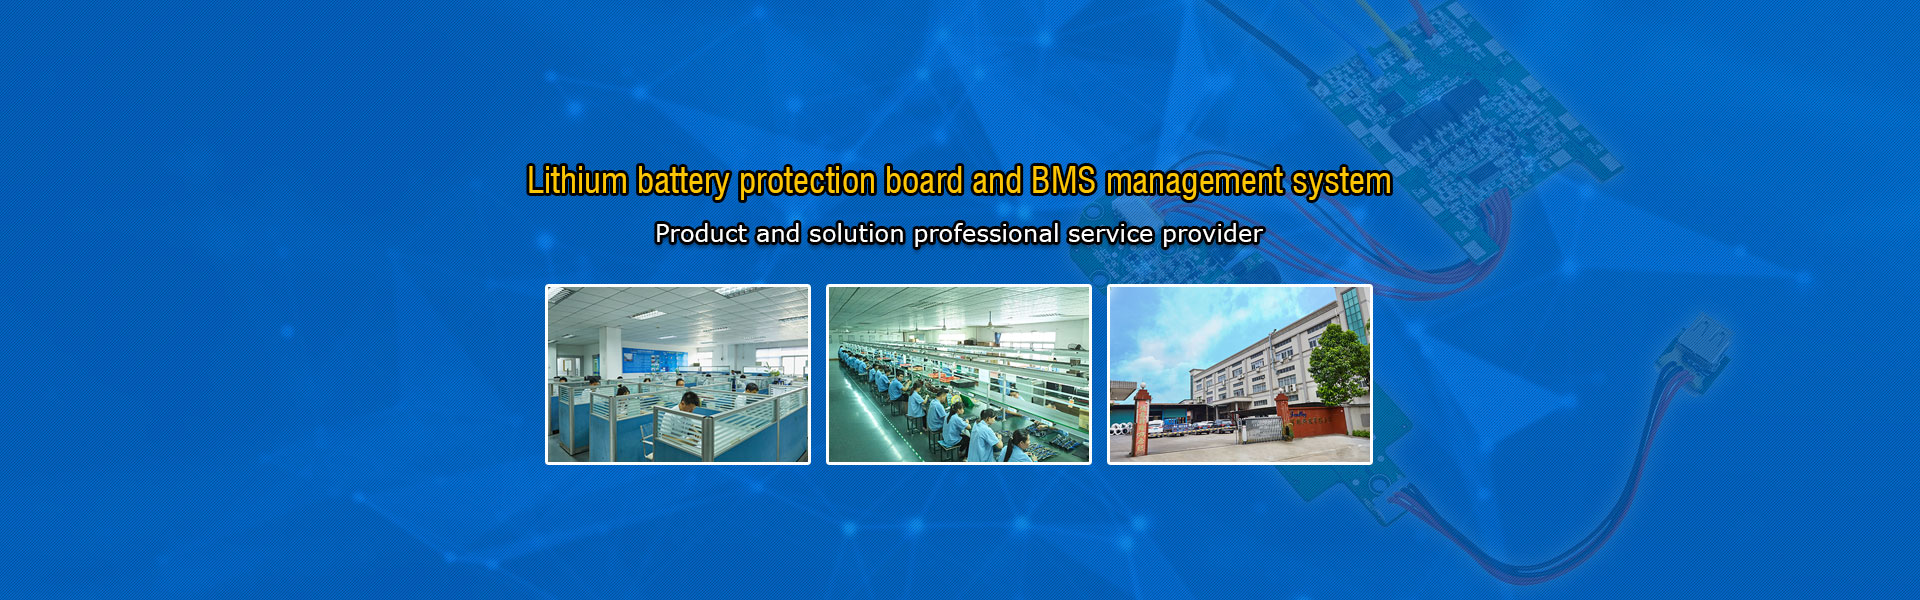 Dongguan BestWay Technology Co., LTD.,Professional manufacturer of battery pack protection board